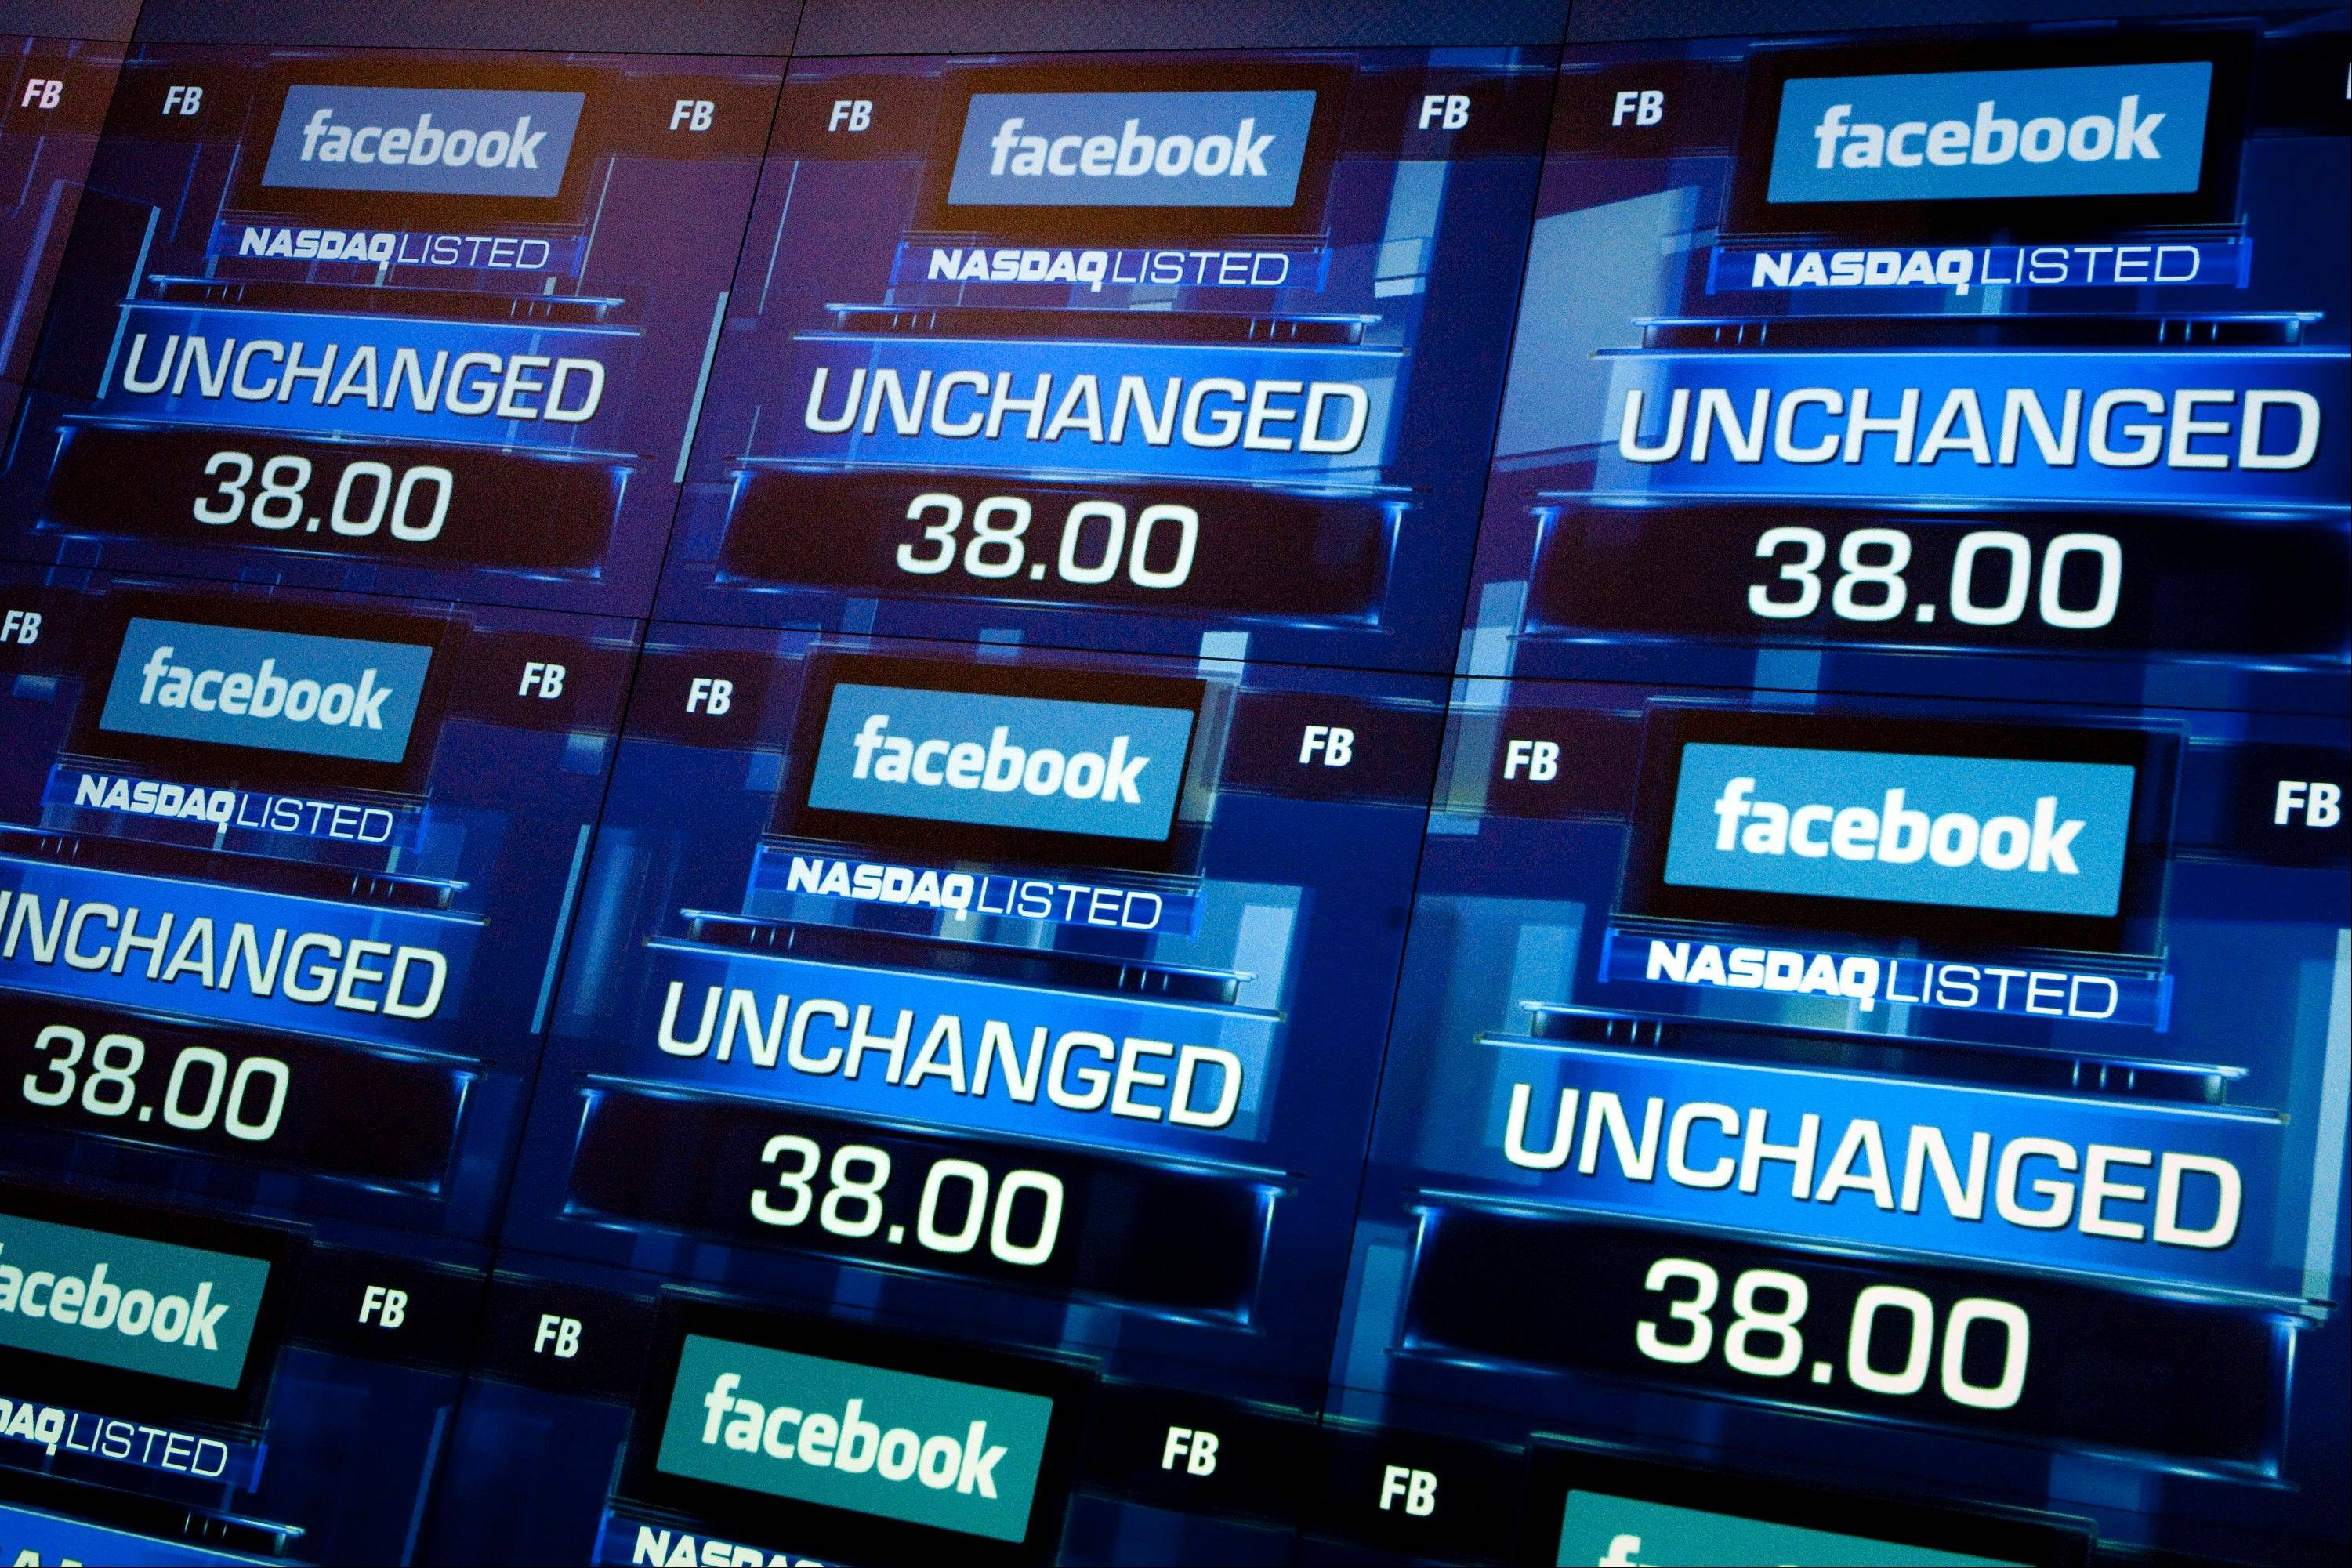 "The Facebook Inc. logo is displayed with the word ""unchanged"" prior to trading at the Nasdaq MarketSite in New York, U.S., on Friday, May 18, 2012. Nasdaq OMX Group Inc. experienced a delay in opening shares of Facebook Inc., with trading beginning at about 11:30 a.m. instead of the planned 11:00 a.m. start. Facebook Inc. rose in its trading debut following a record initial public offering that made the social network more costly than almost every company in the Standard & Poor's 500 Index."